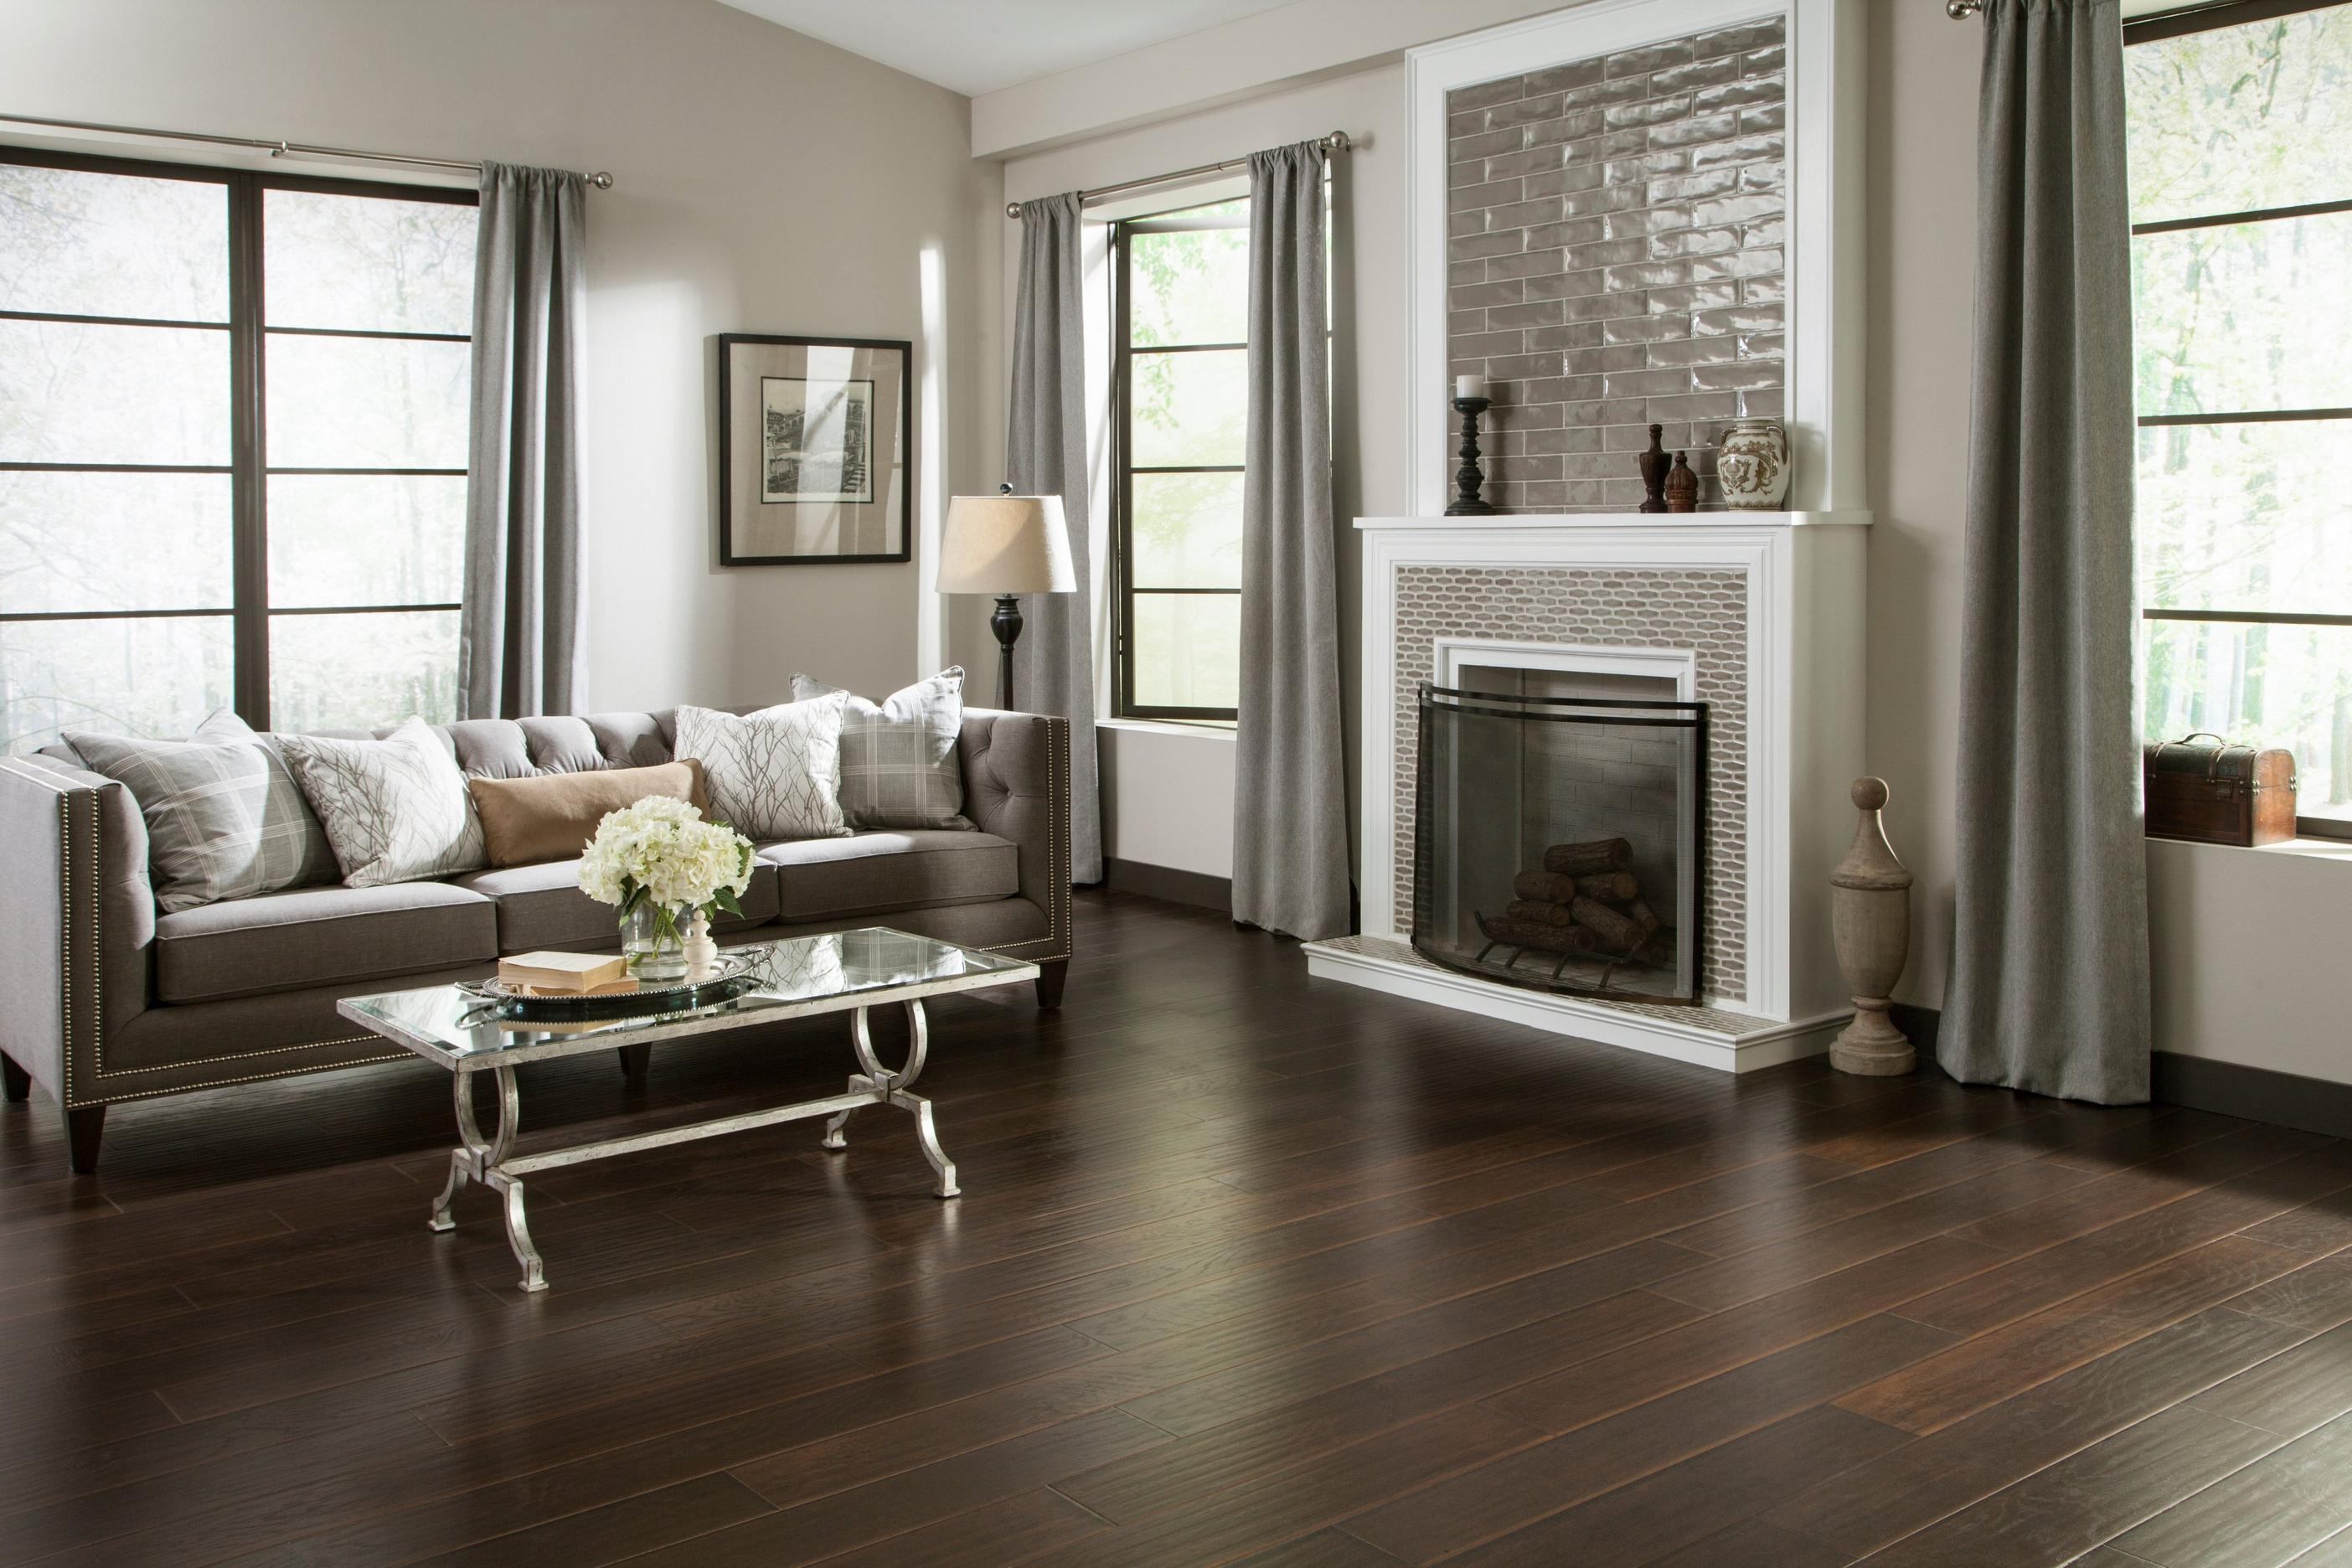 Living gallery floor decor view details dailygadgetfo Choice Image